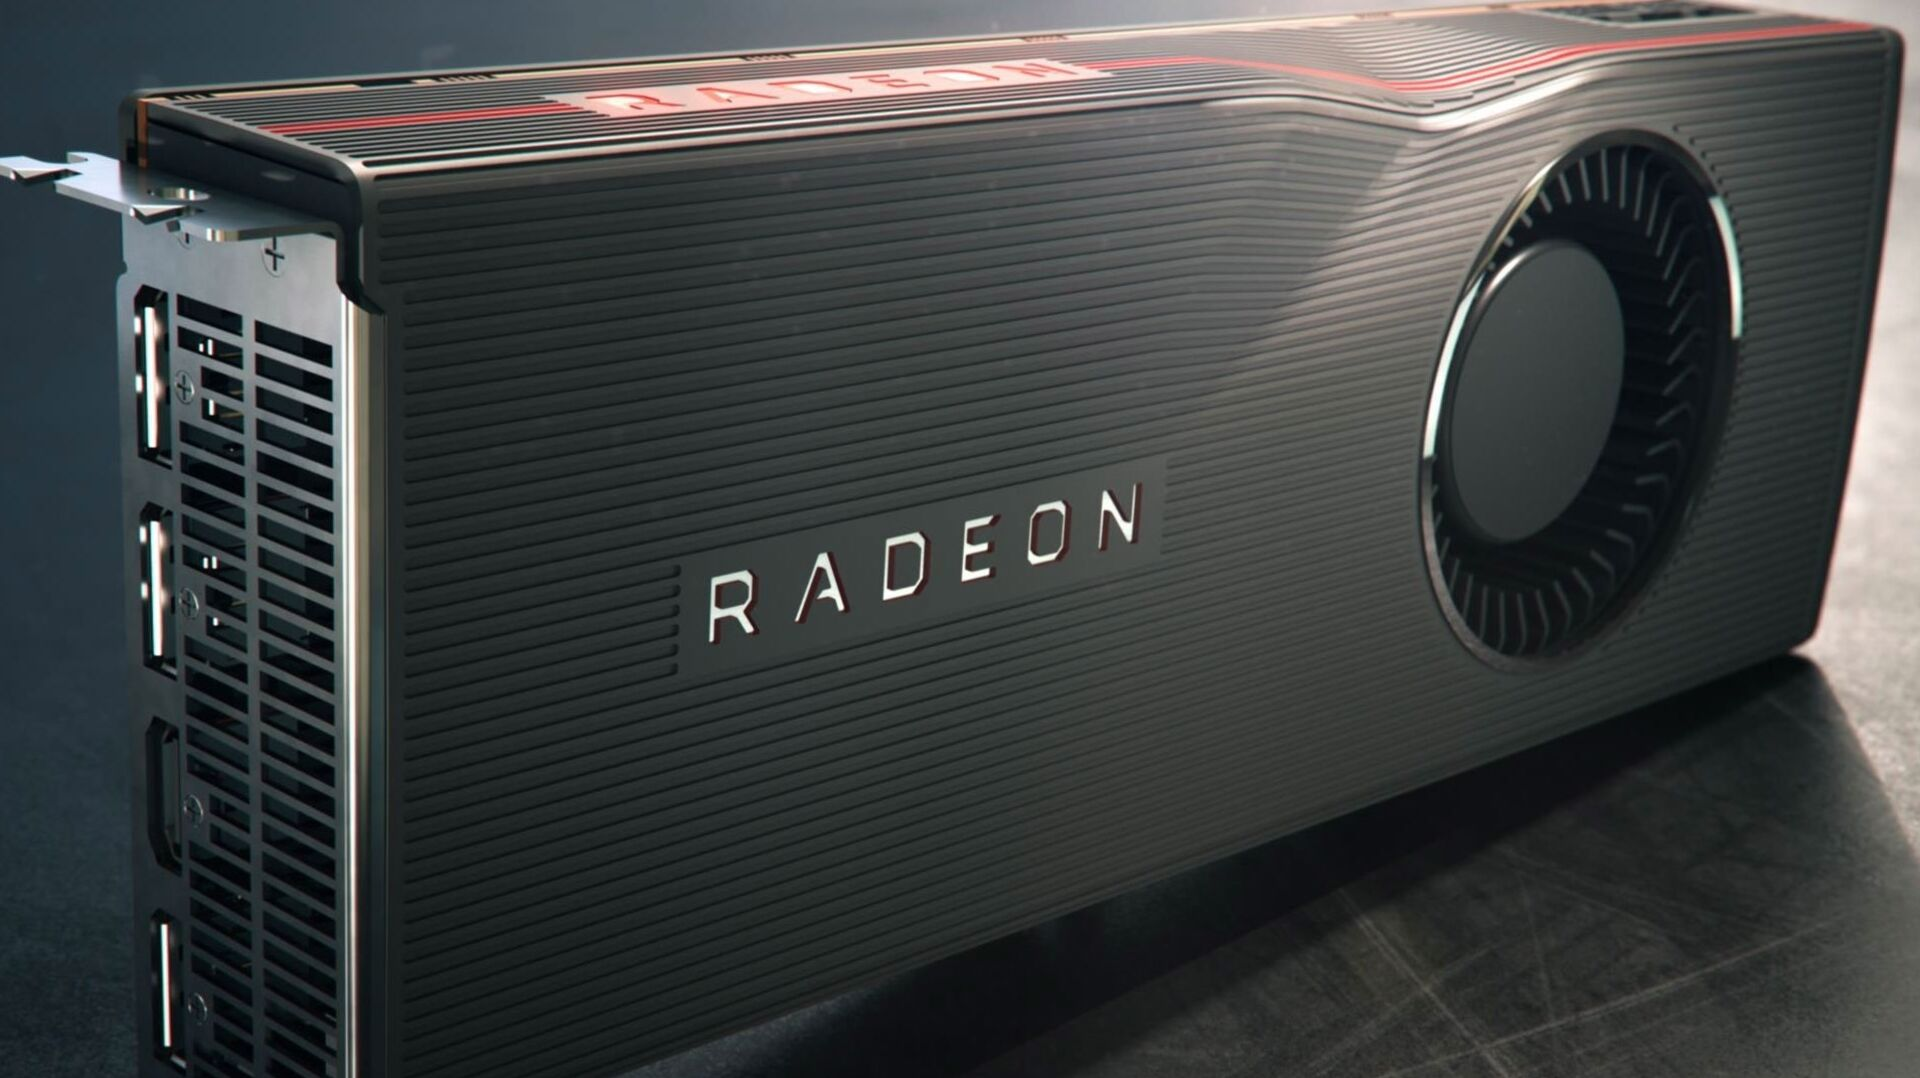 AMD Radeon RX 5700/ RX 5700 XT review: head-to-head with